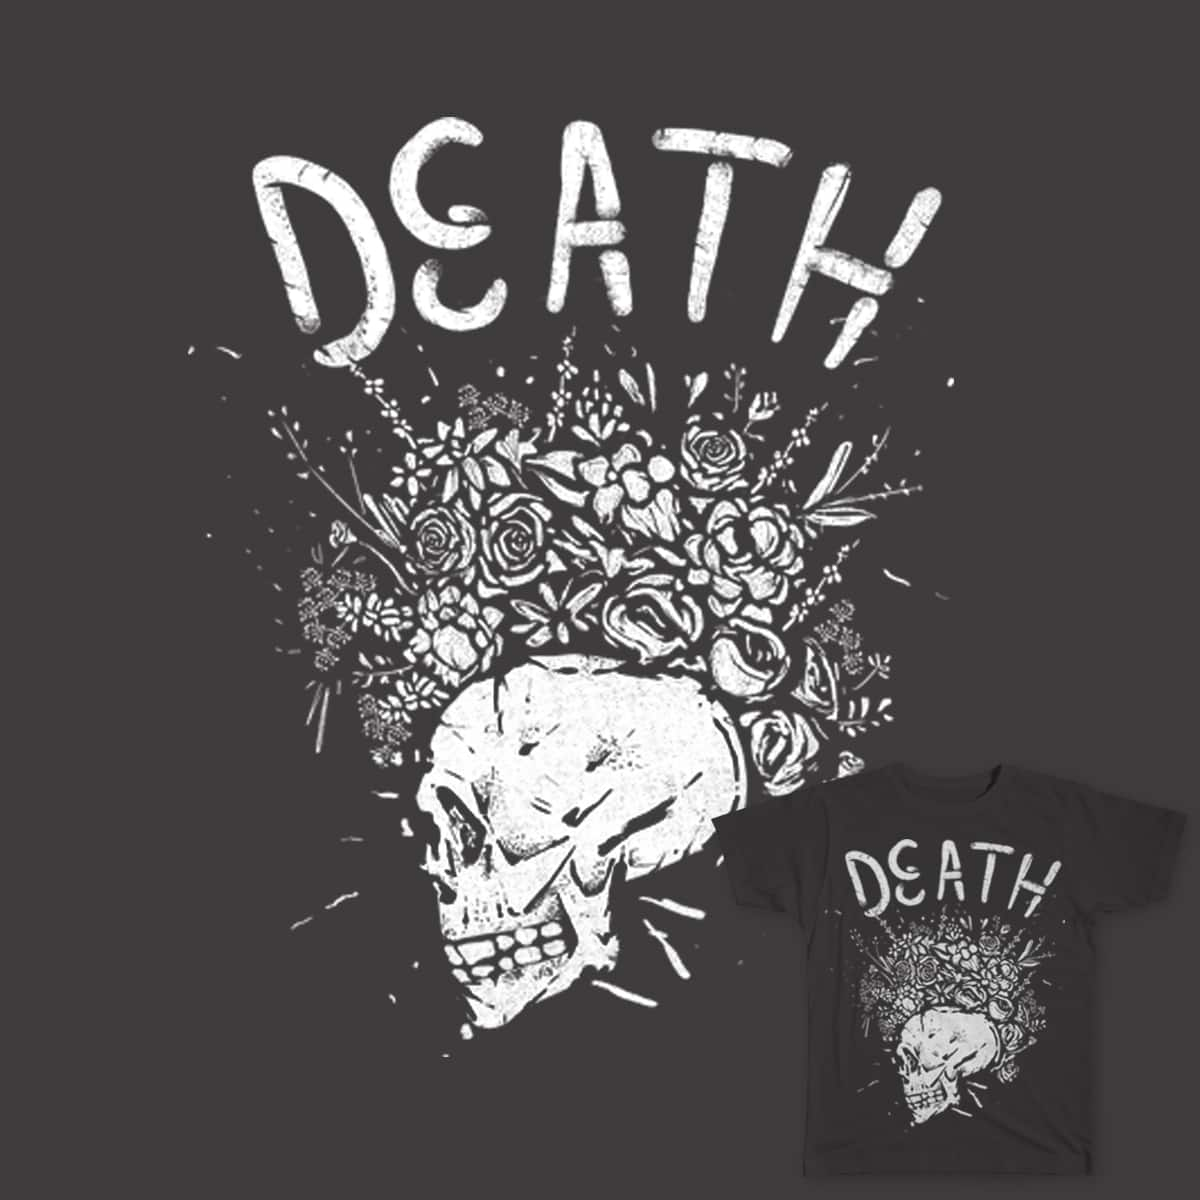 death by cortinasg on Threadless